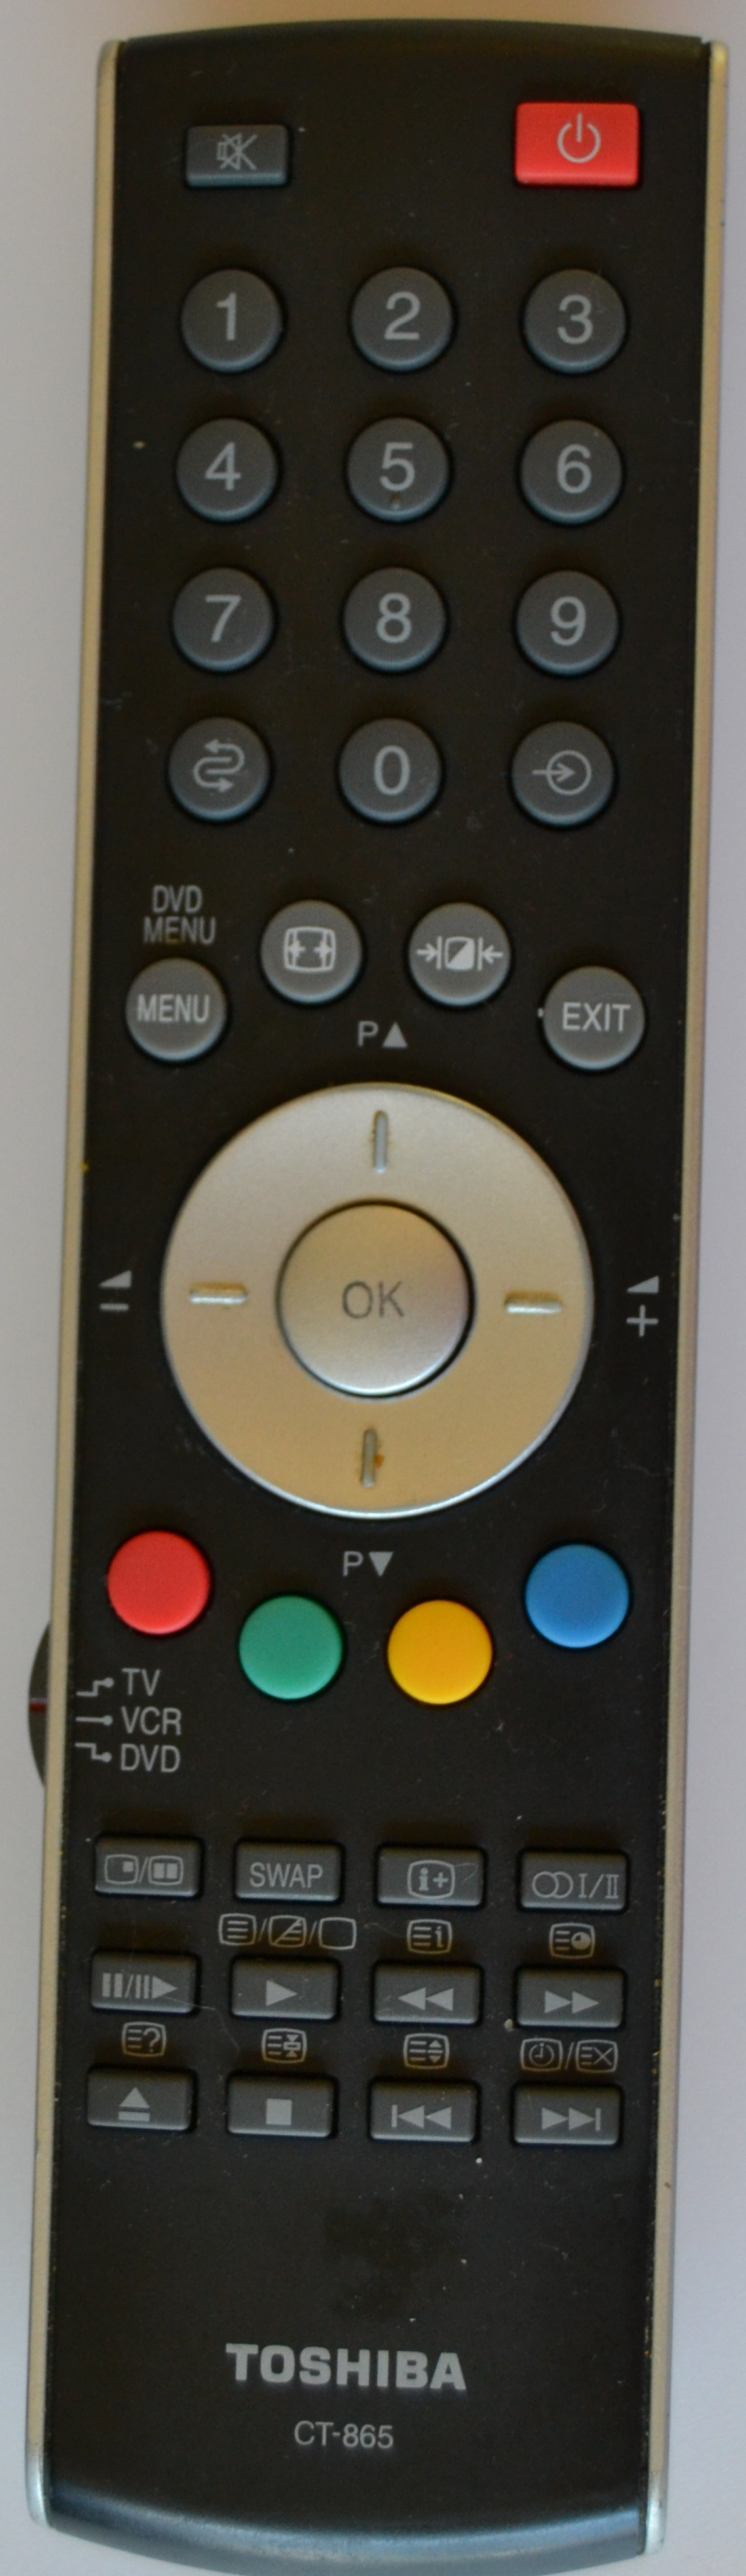 RC/TOSH/CT-856   ORIGINAL REMOTE CONTROL ,CT-856, for ,TOSHIBA LED TV,